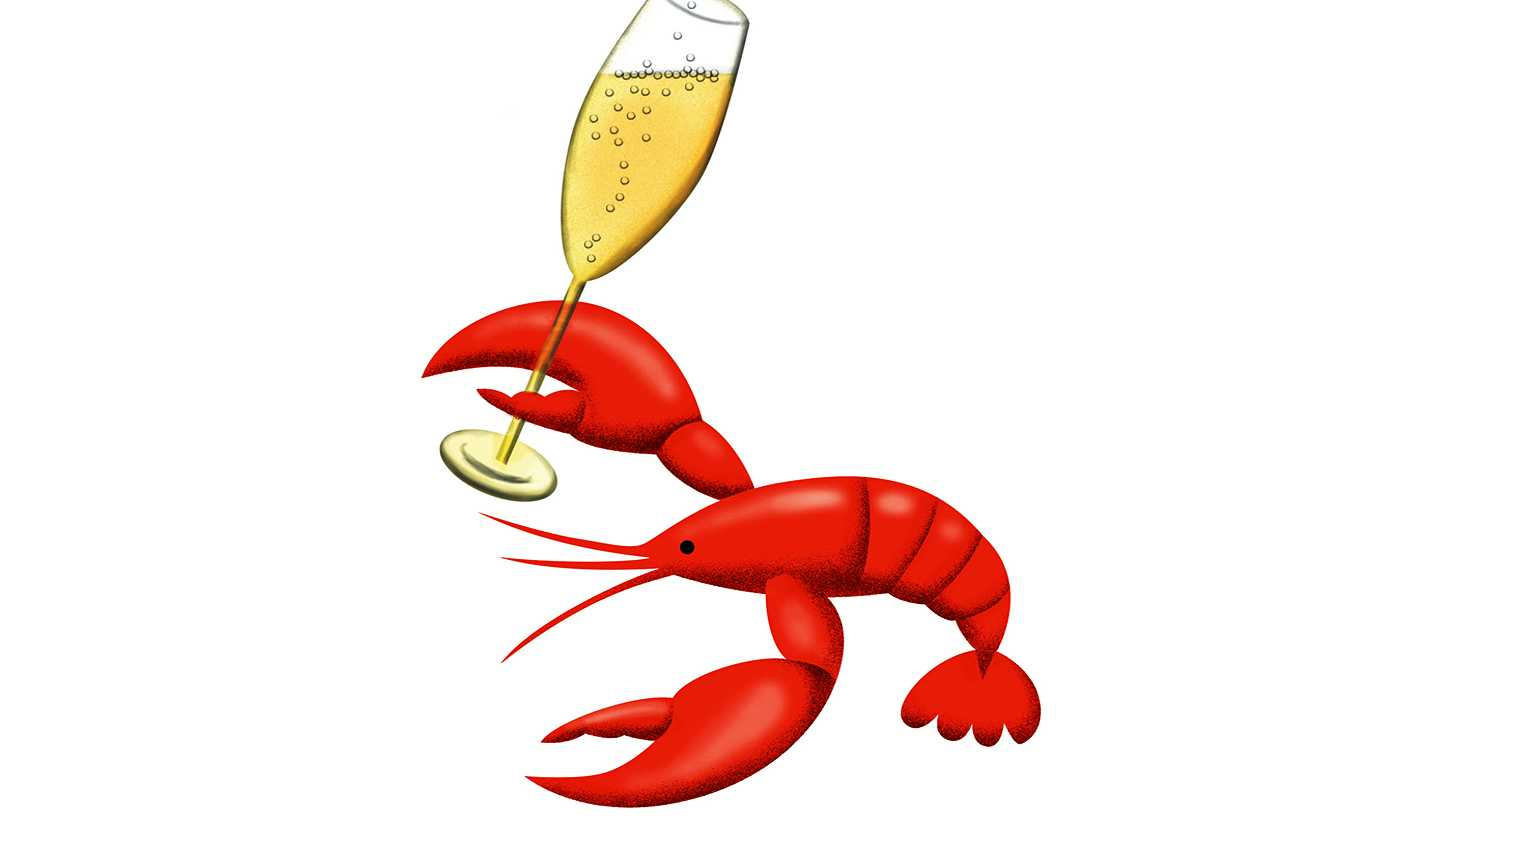 An illustration of a lobster holding a flute of bubbly champagne.